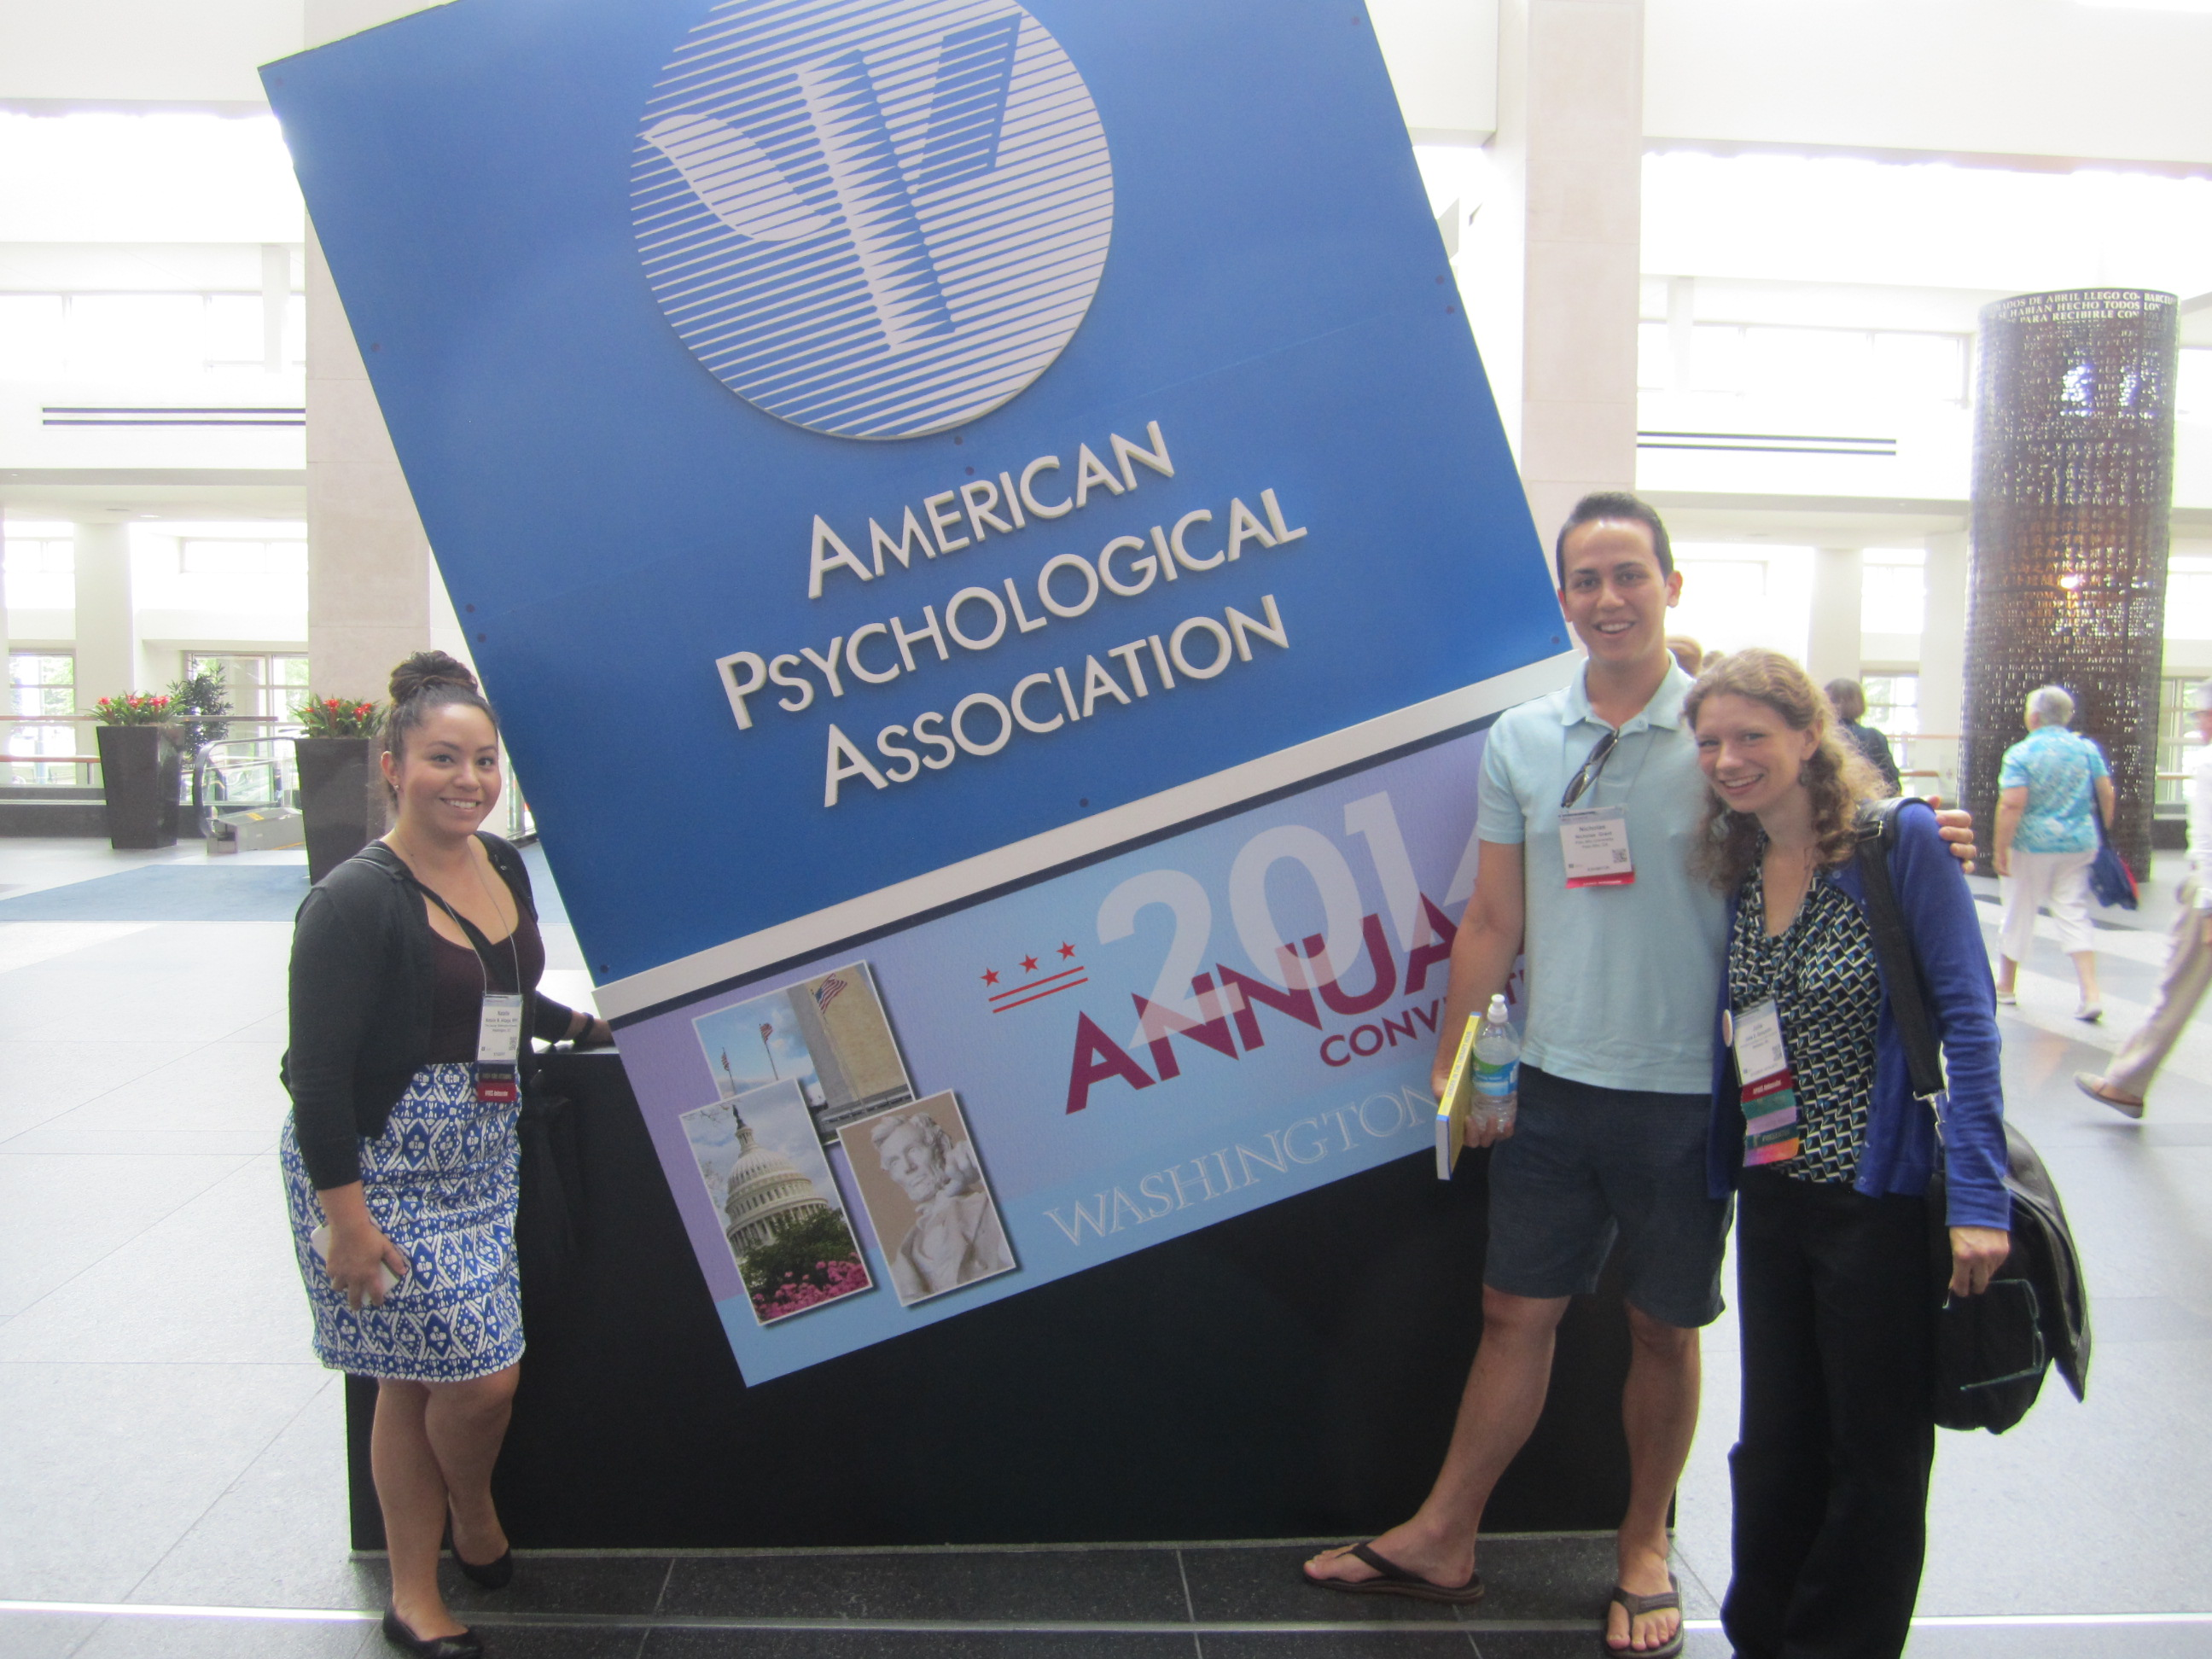 A few members of the committee formerly known as CLGBTC strike a pose at APA's 2014 Convention in DC, from left: Natalie Alizaga, Nick Grant, and Julia Benjamin.